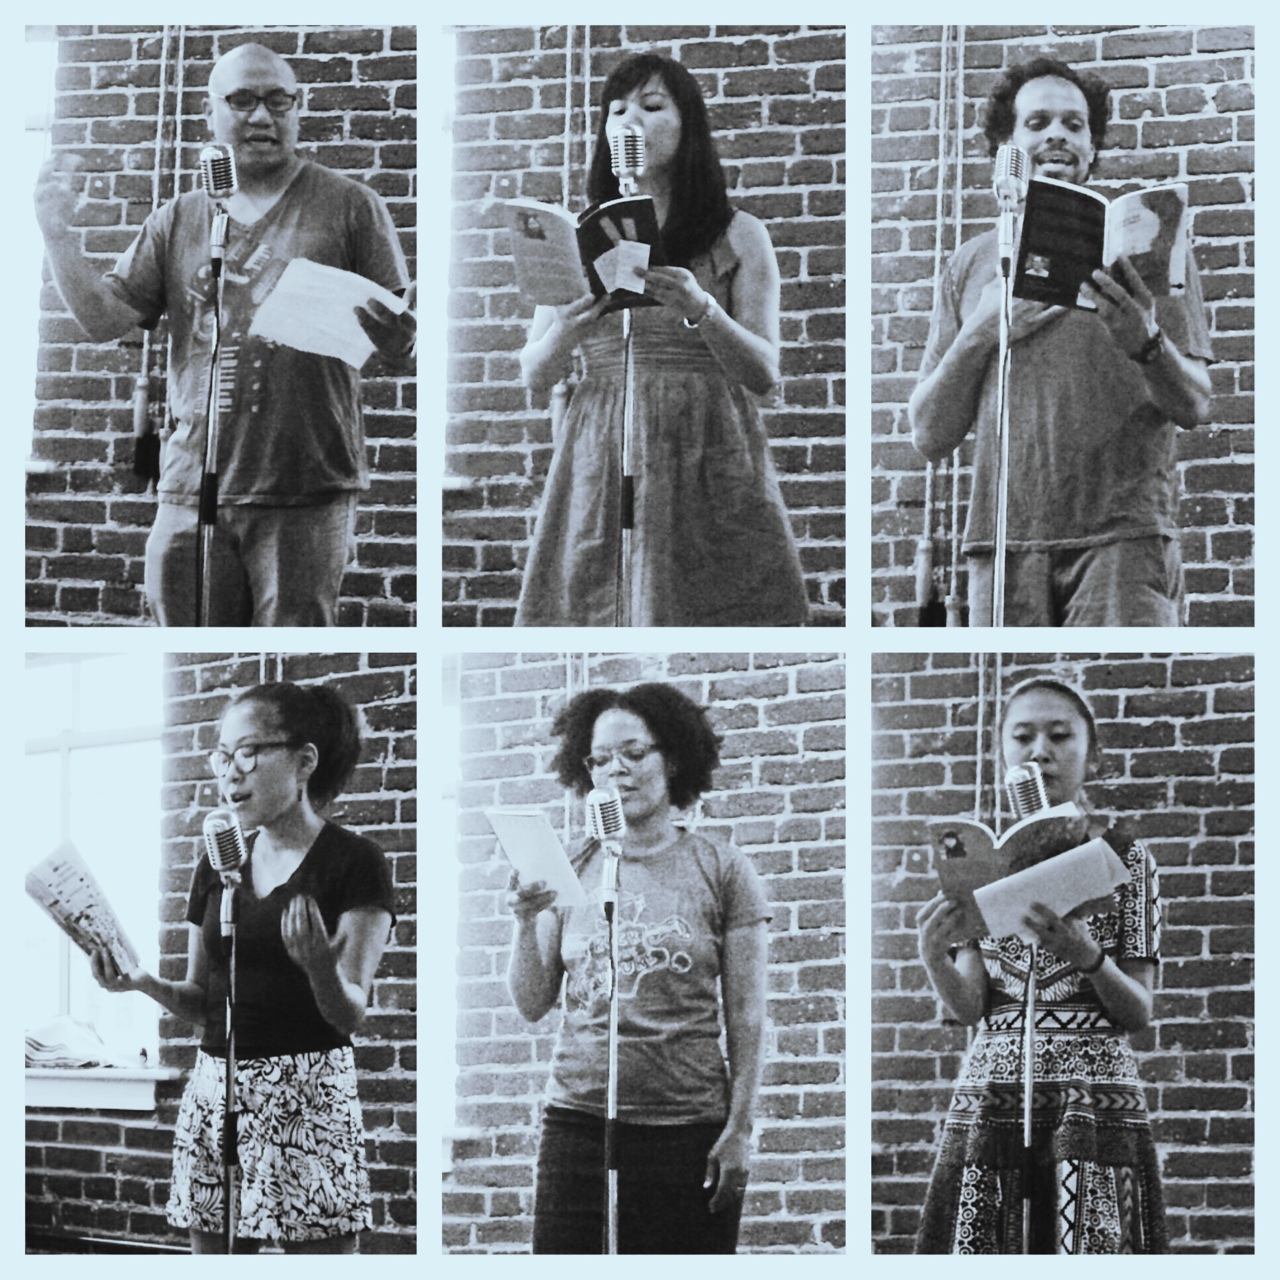 honeybadgersdontgiveabooktour :     Poets, clockwise from top left: Patrick Rosal, Cathy Linh Che, Ross Gay, Sally Wen Mao, Yolanda Wisher, Eugenia Leigh // At Ayat Arts, Philly.